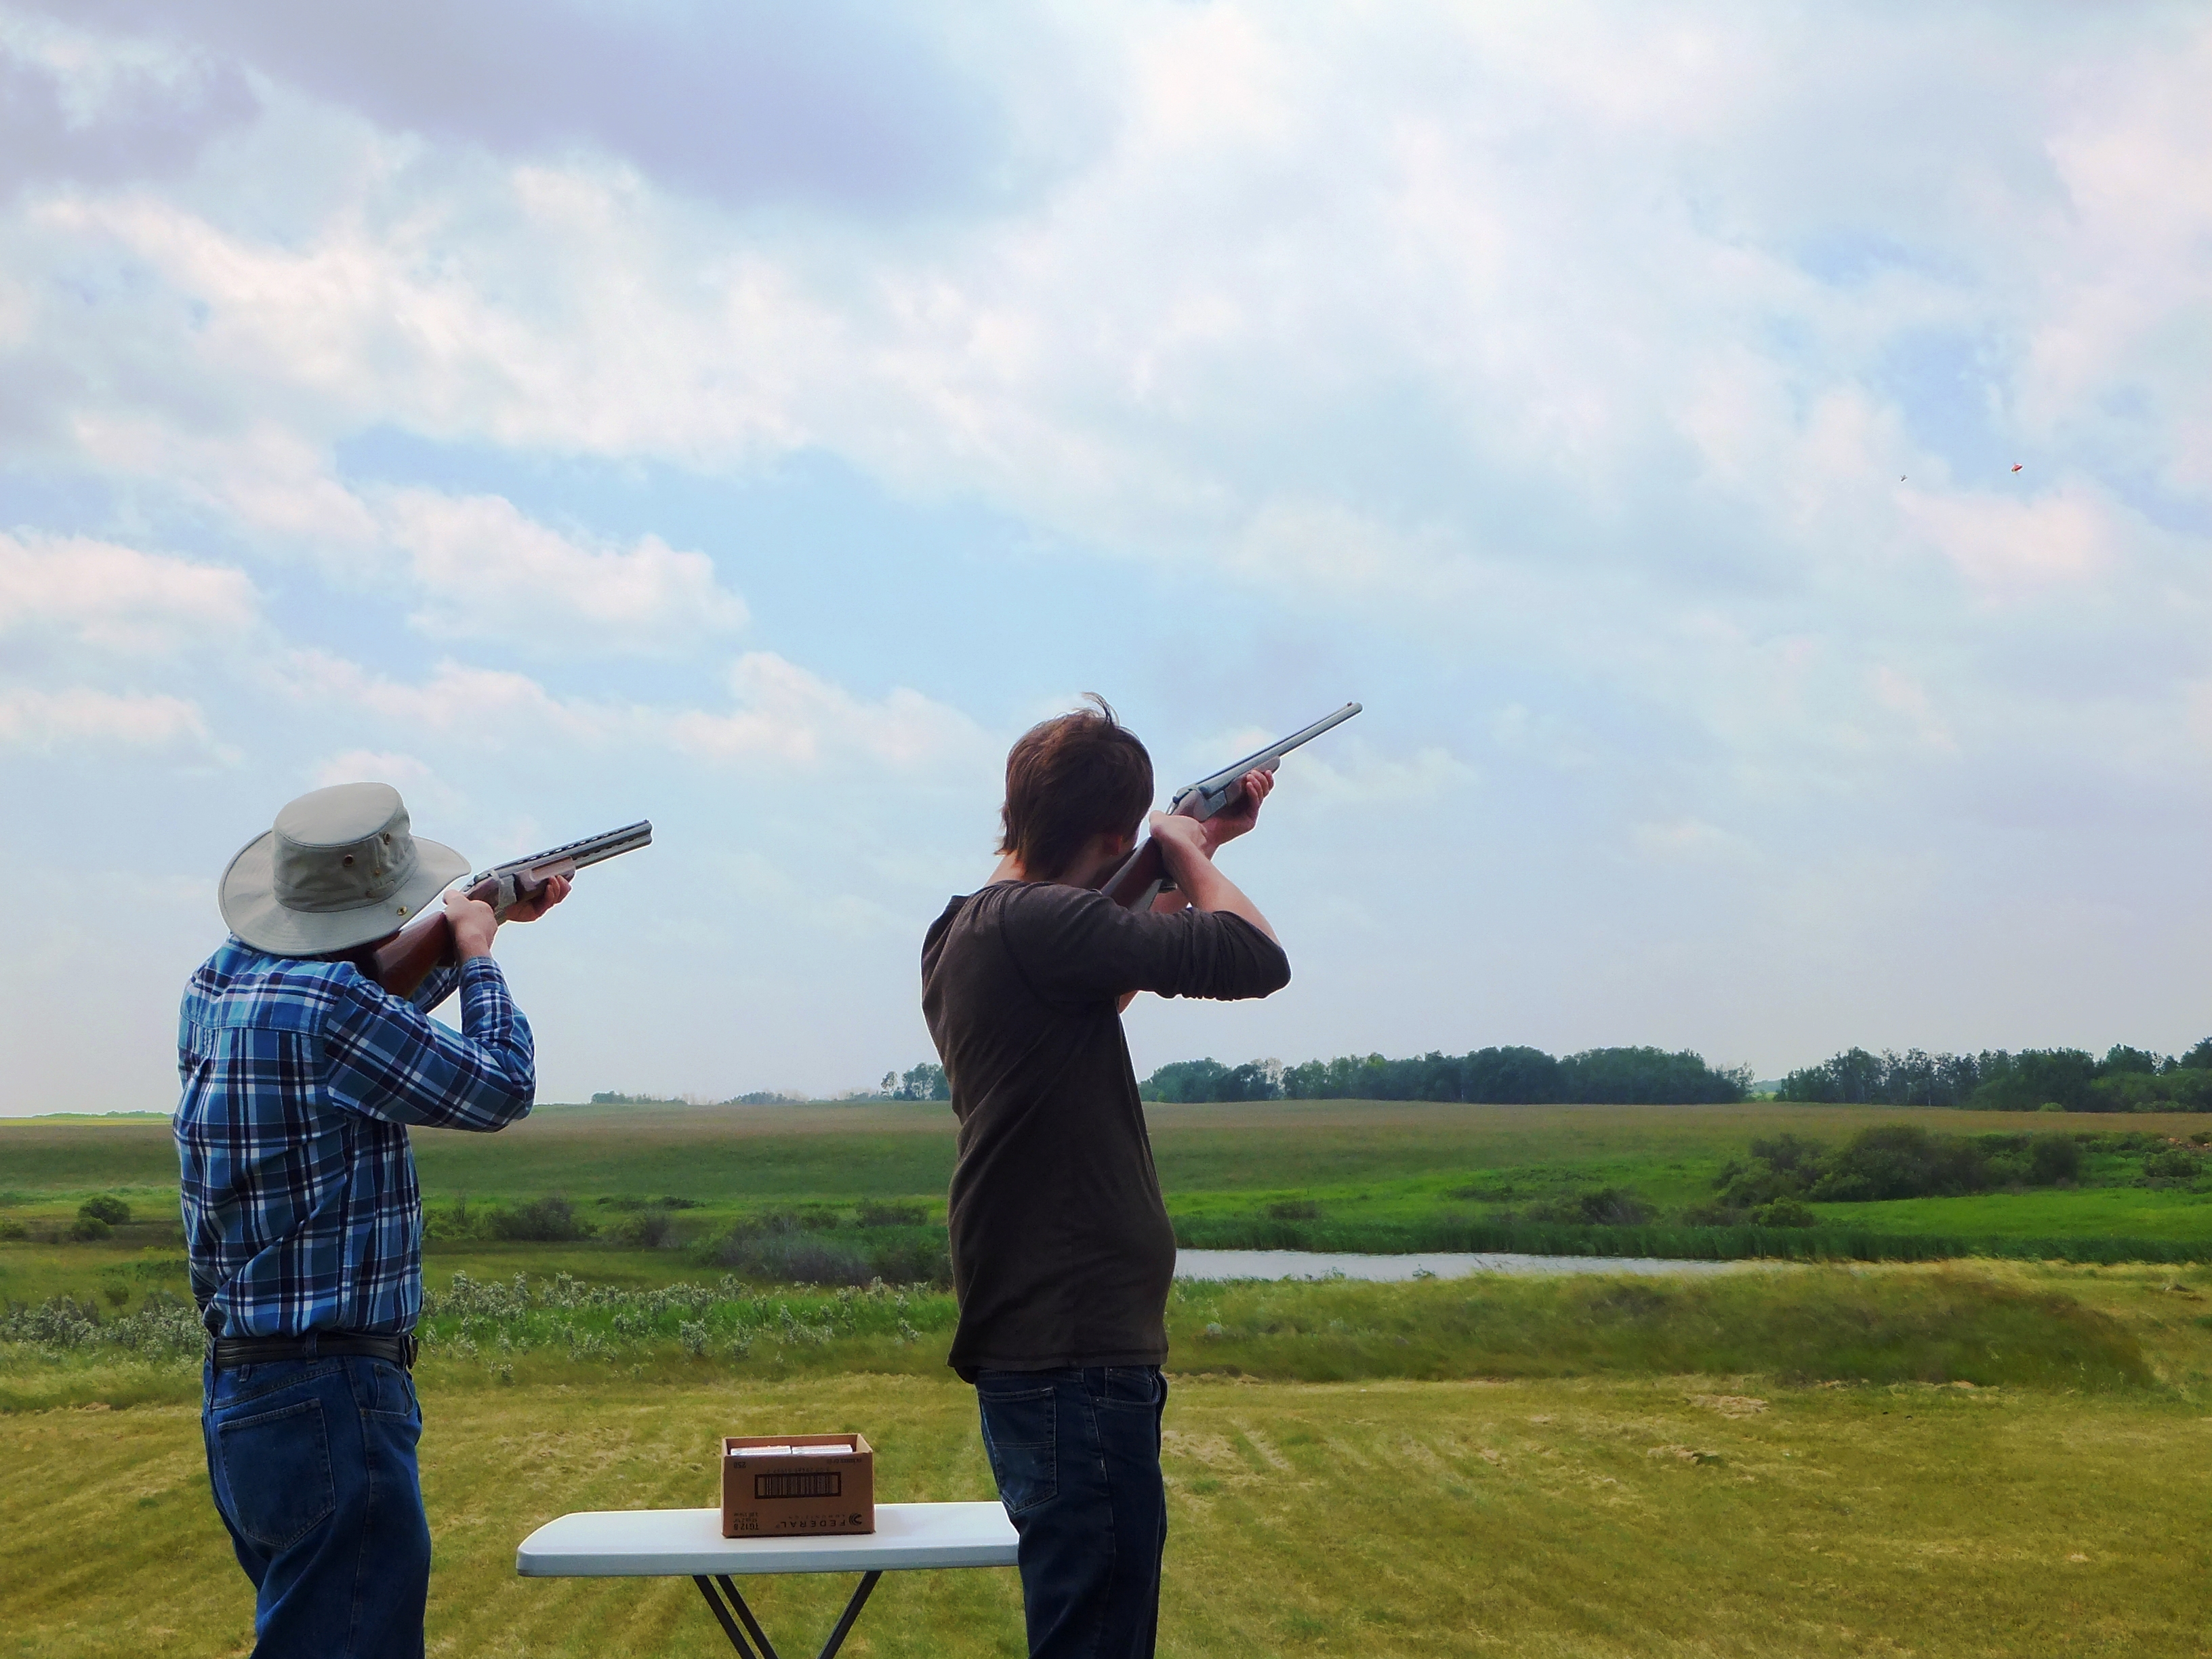 Video From The Mount Olive Men's Trap Shooting Event - July 12th 2014 - Image 4